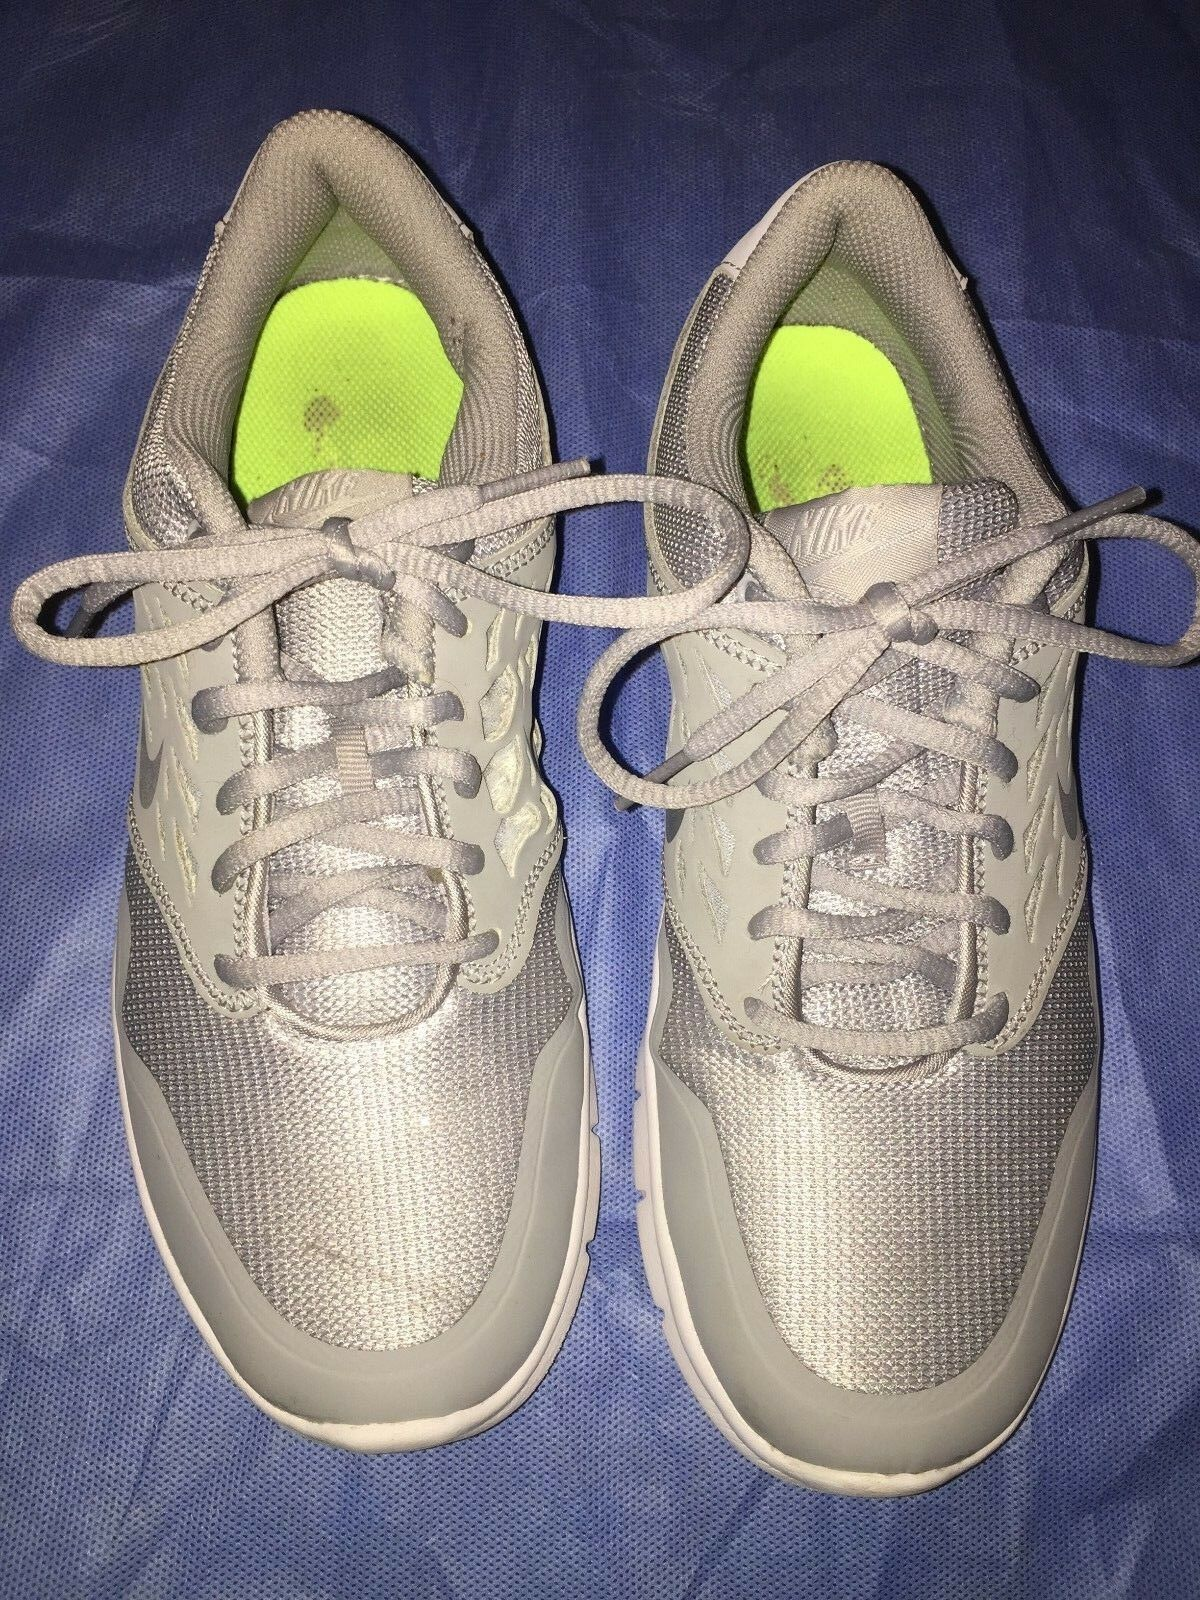 NIKE - Women's Gray US 8 Athletic Shoes